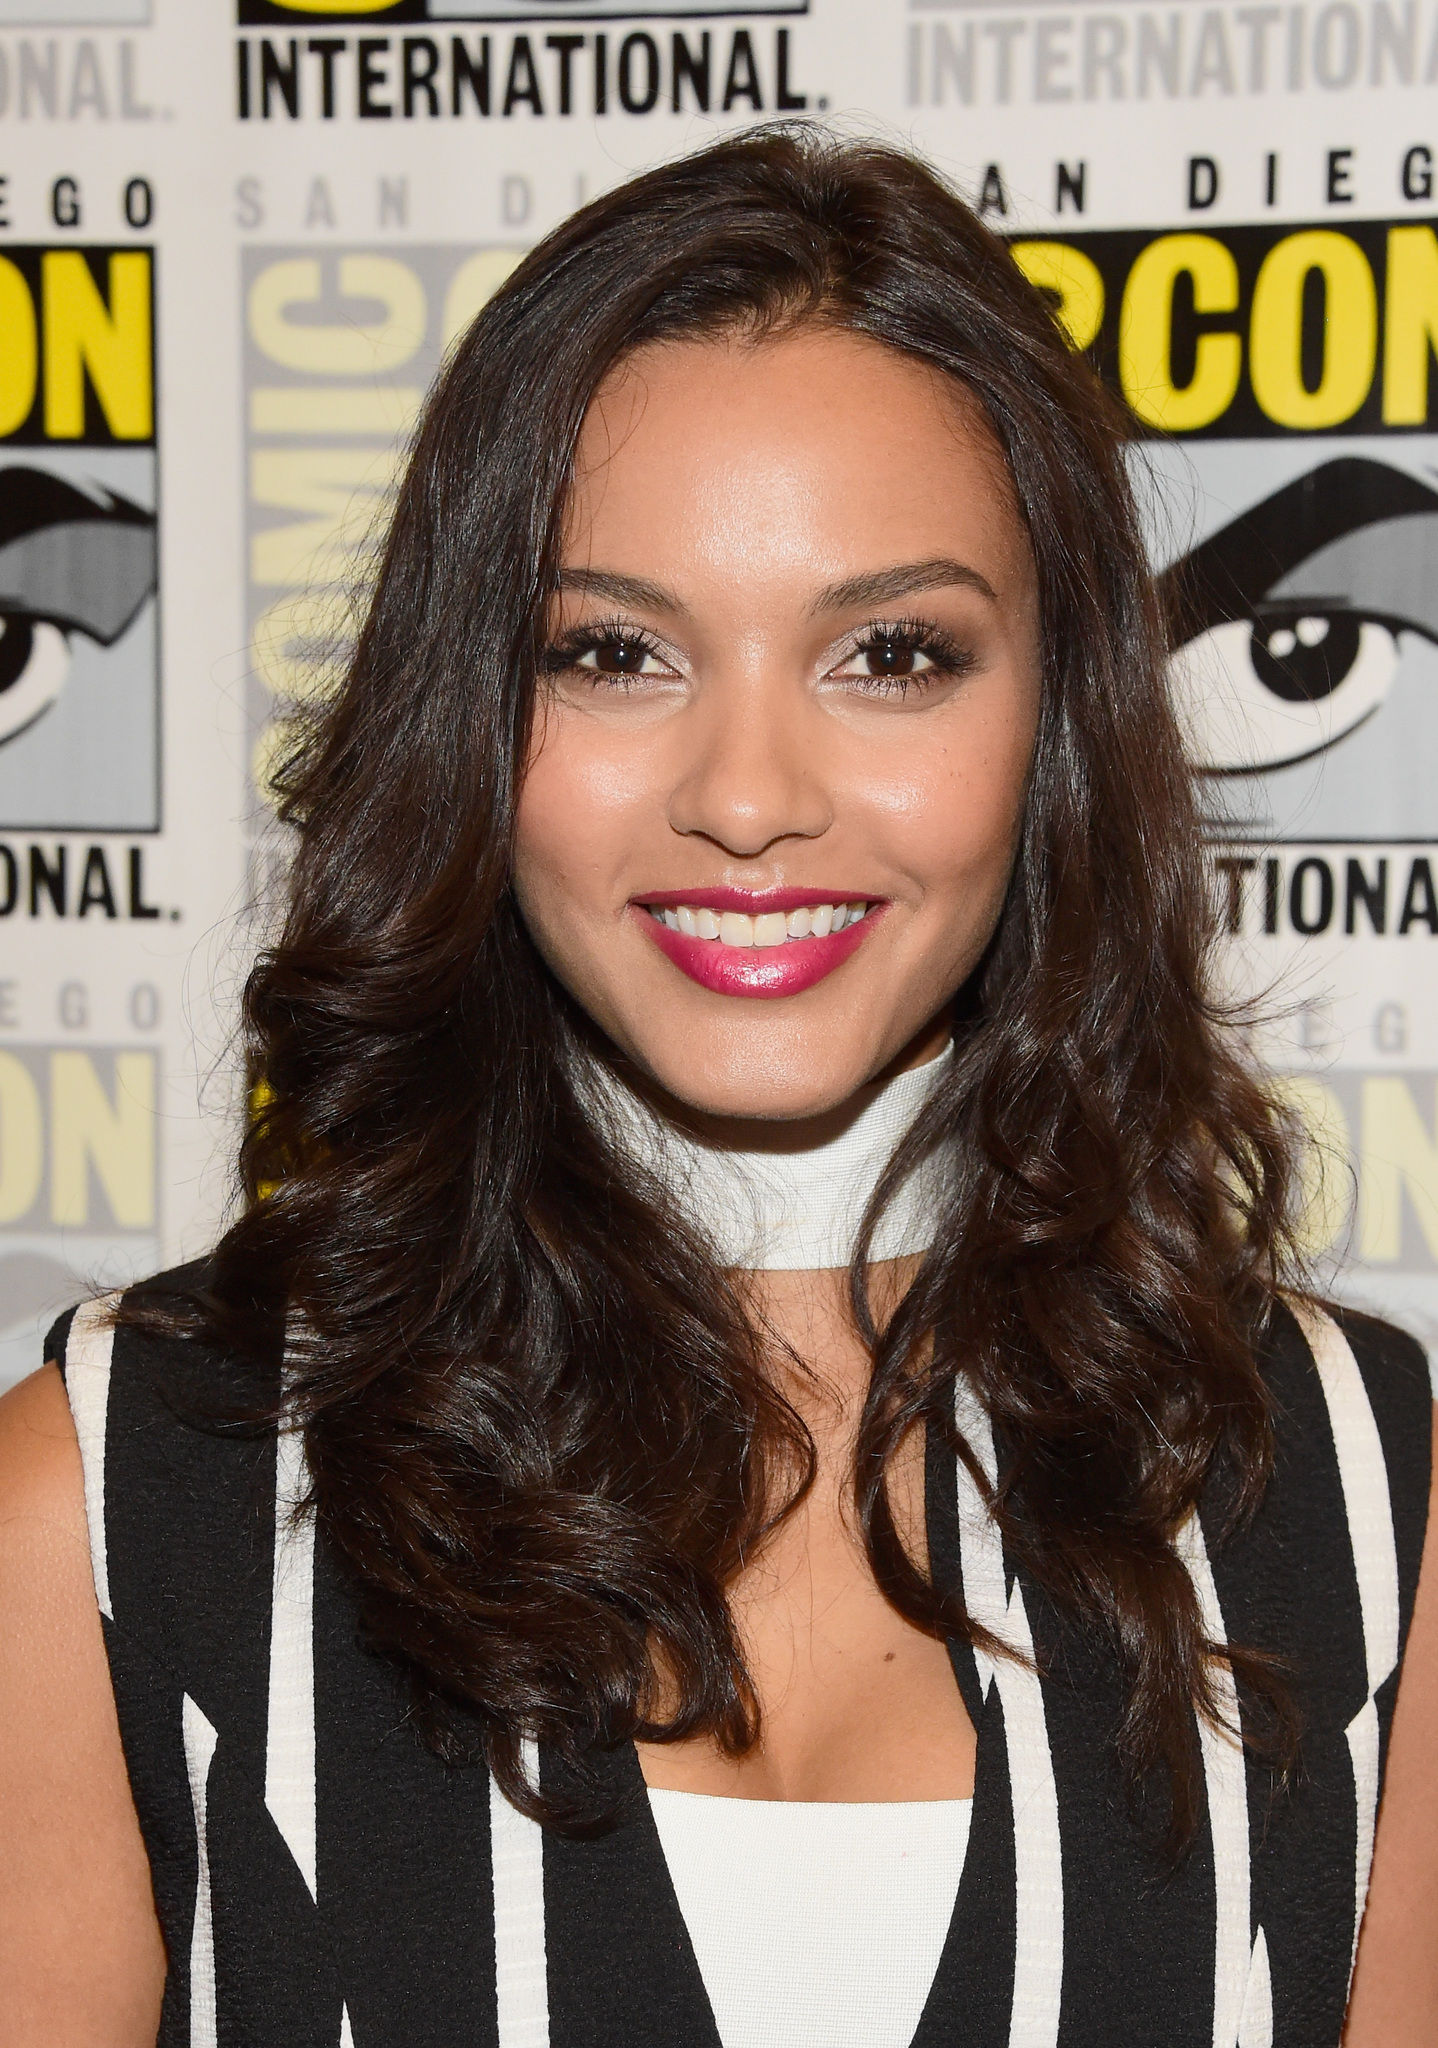 Jessica Lucas at an event for Gotham (2014)